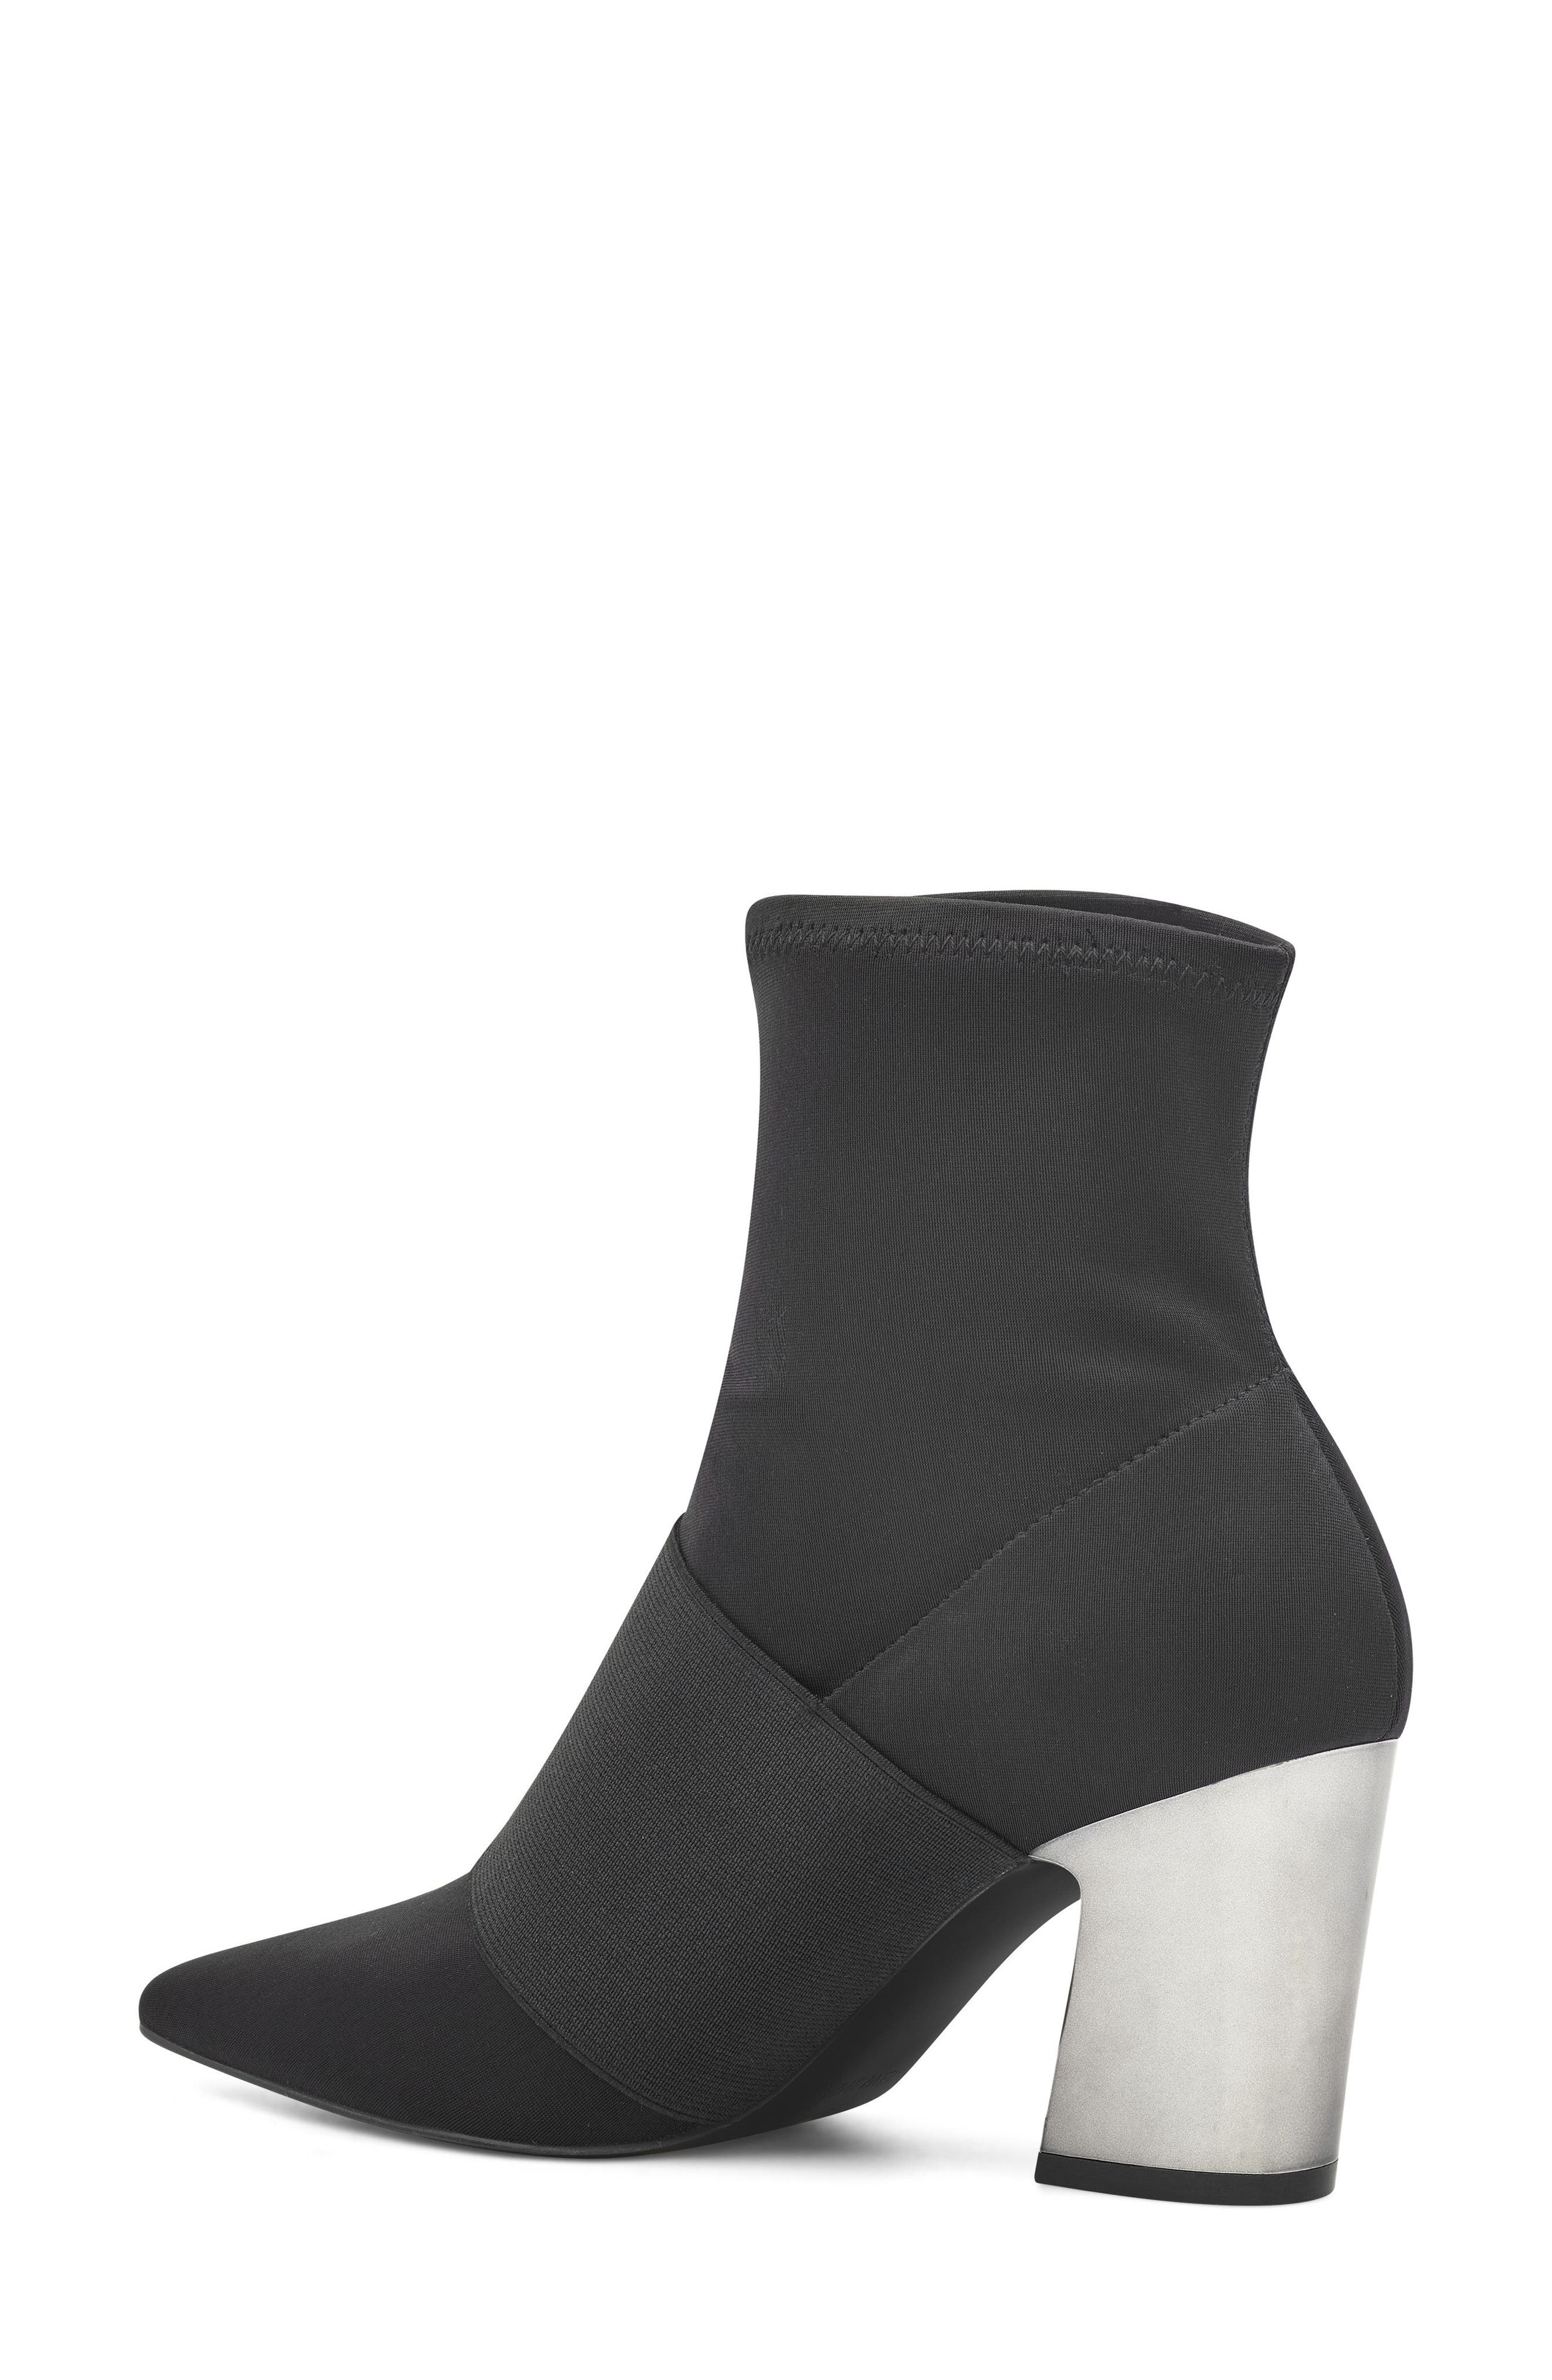 NINE WEST, Delayna Boot, Alternate thumbnail 2, color, 001